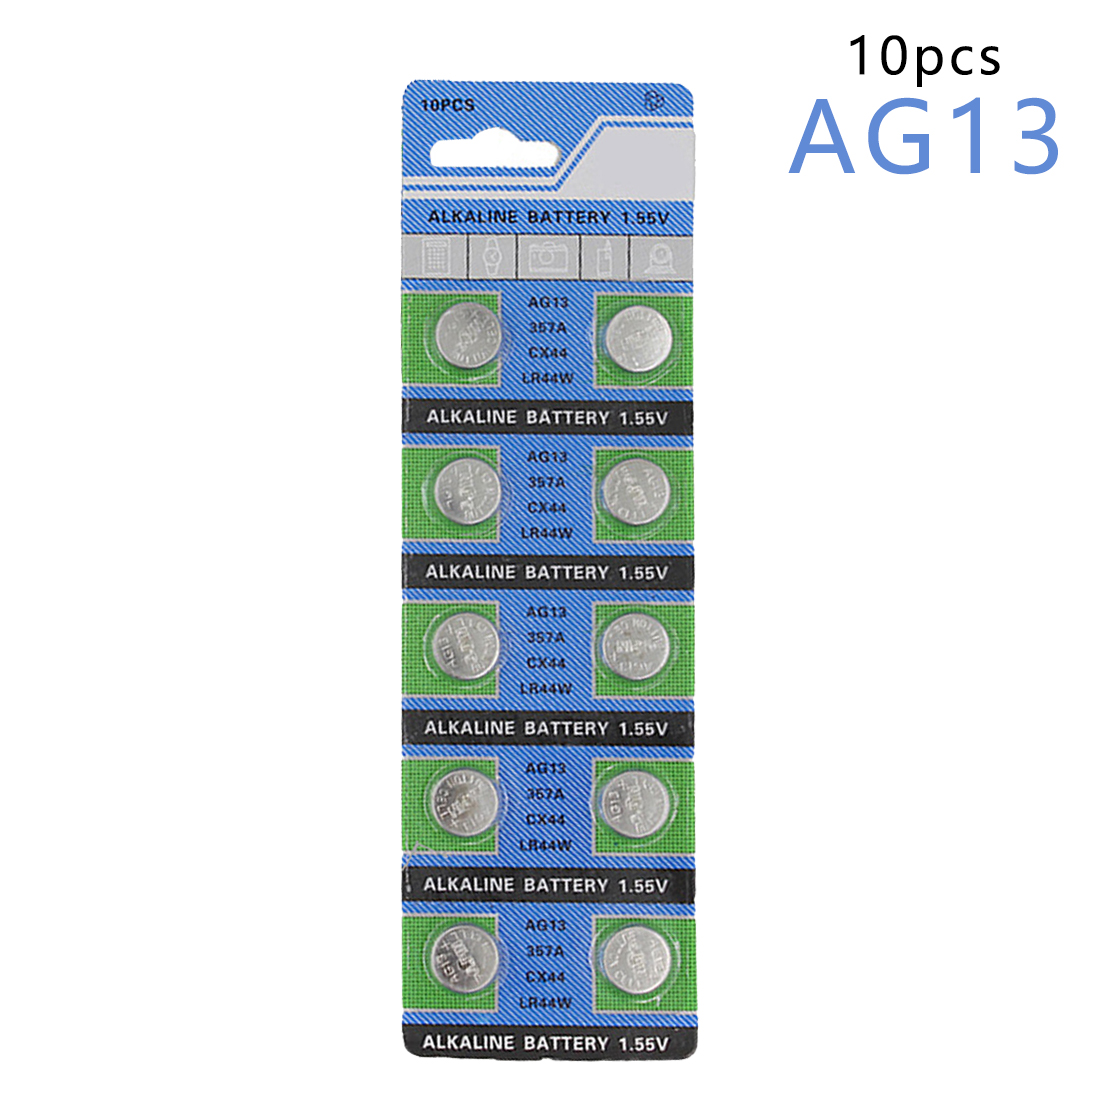 цена на Centechia High Quality 10 Pcs AG13 LR44 357A S76E G13 Button Coin Cell Battery Batteries 1.55V Alkaline